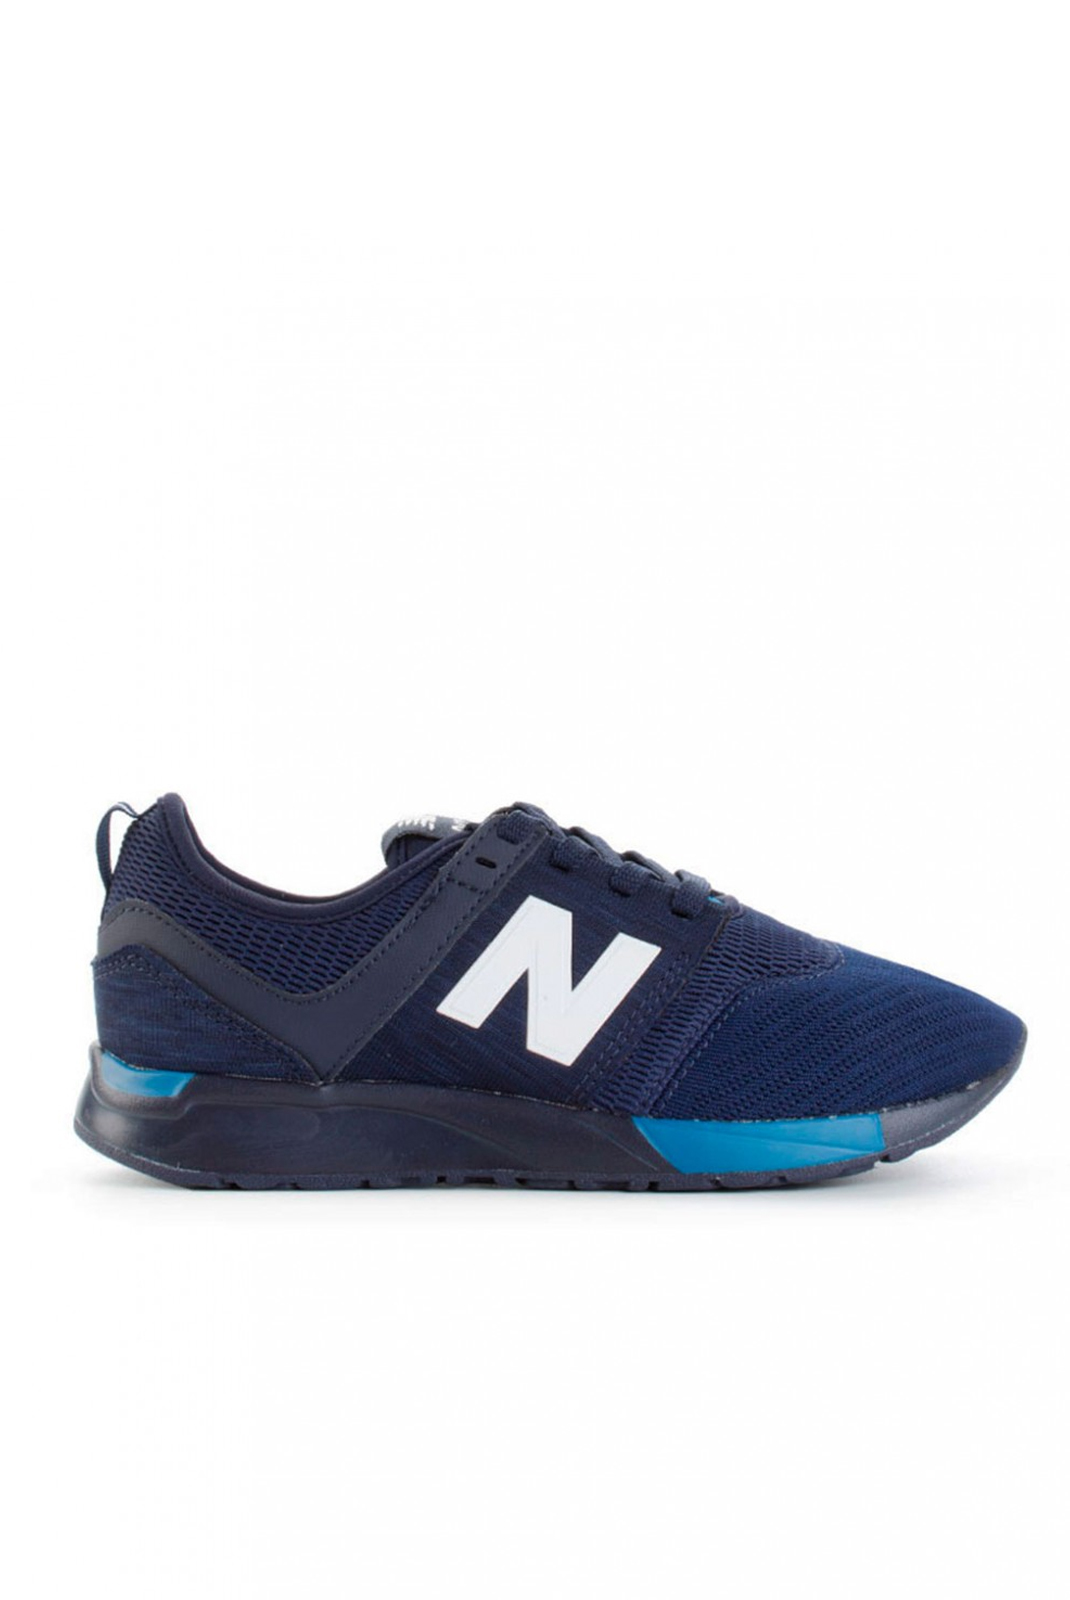 Baskets / Sneakers  New balance KL247C2P marine